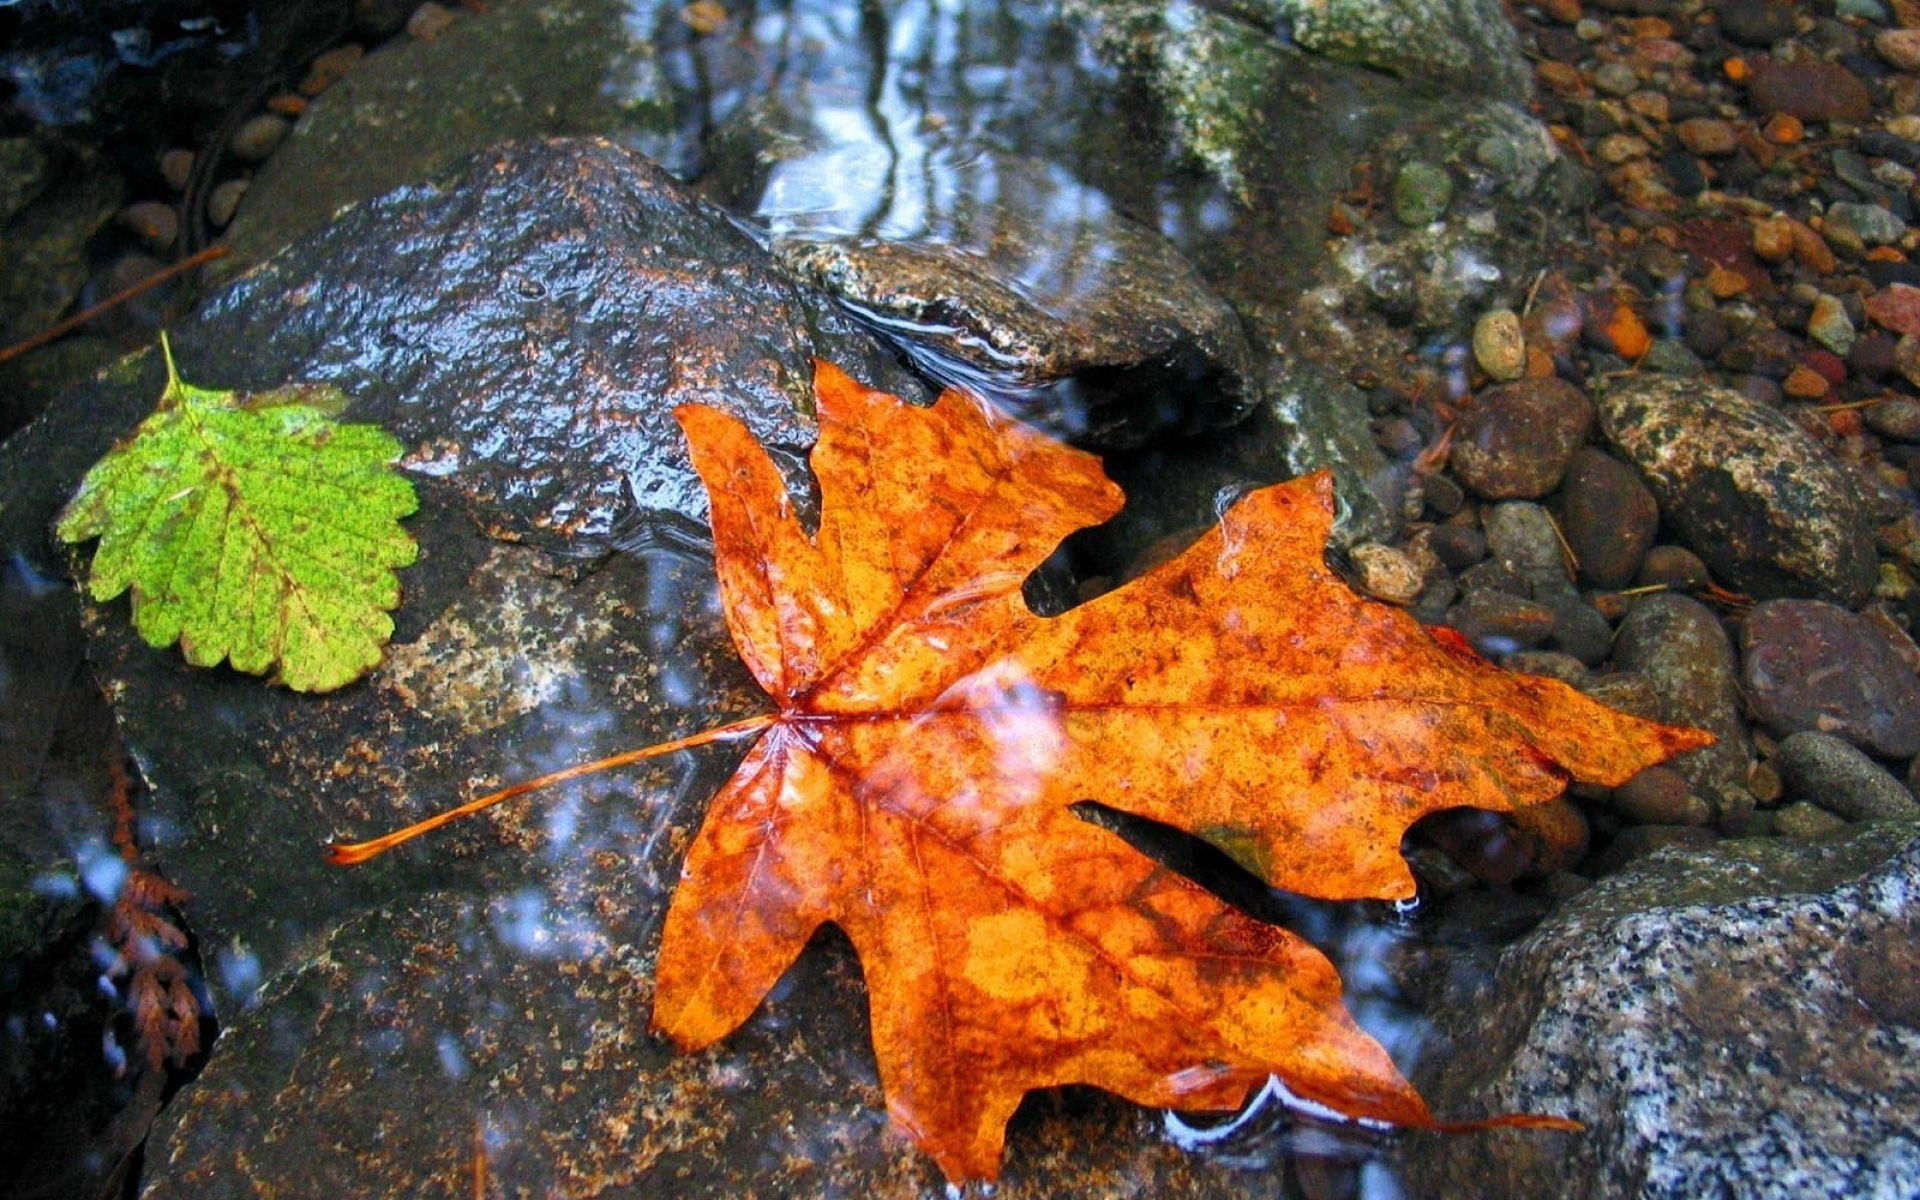 113518 download wallpaper Nature, Maple, Sheet, Leaf, Water, Wet screensavers and pictures for free